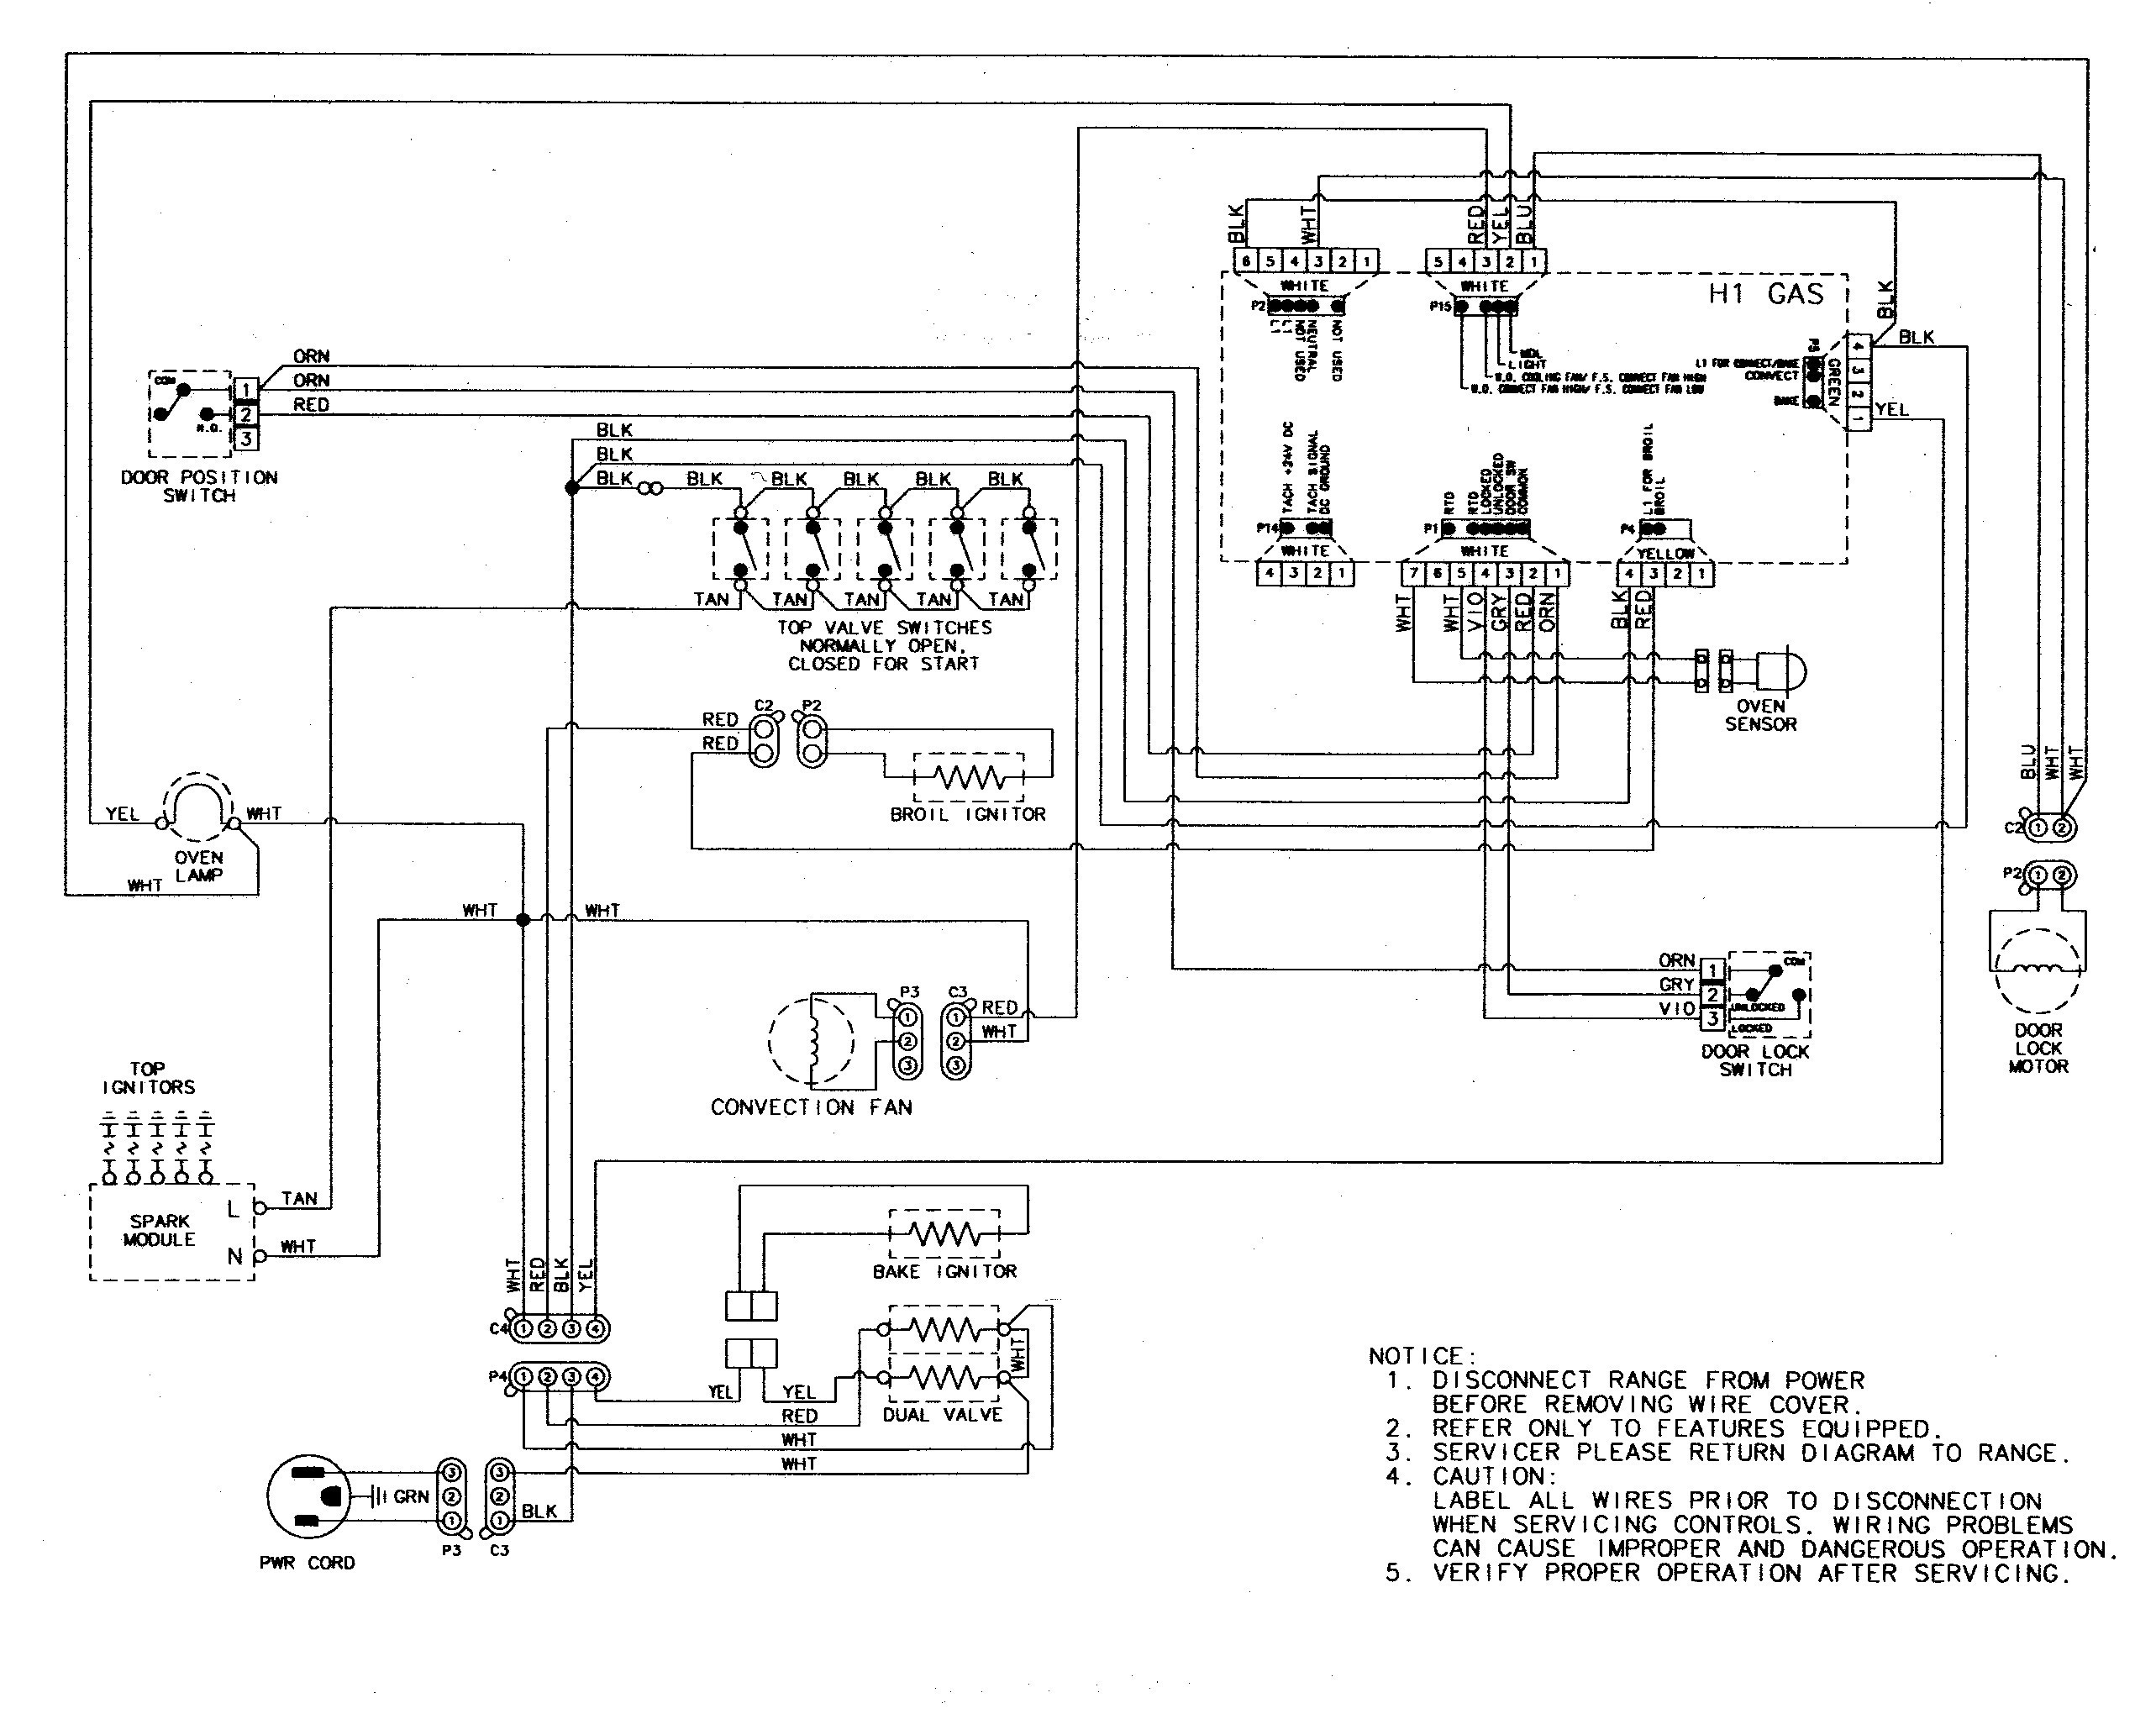 whirlpool gas dryer wiring diagram basic wiring diagram u2022 rh rnetcomputer co